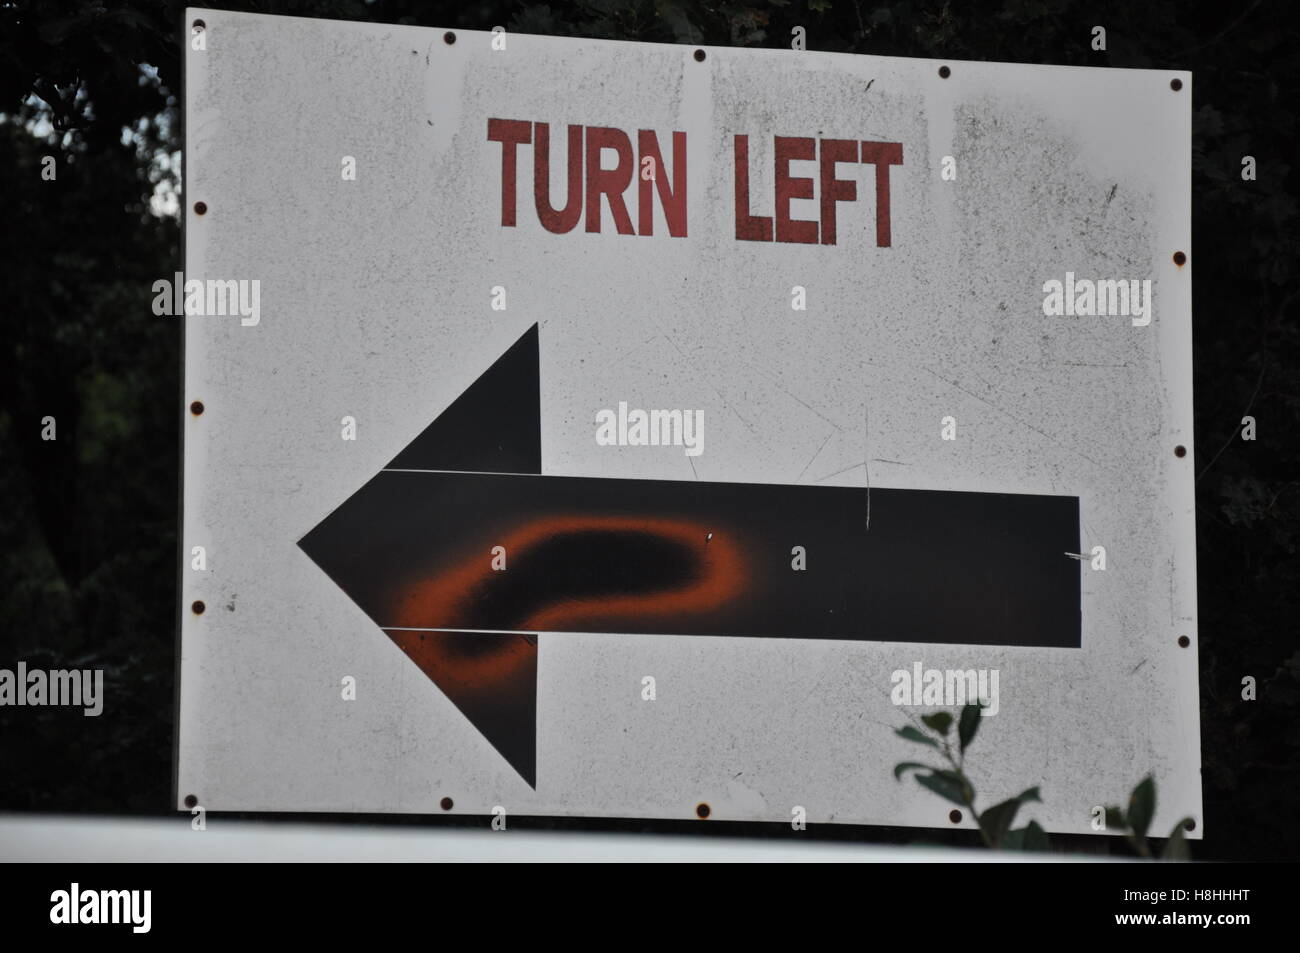 Turn left sign Stock Photo